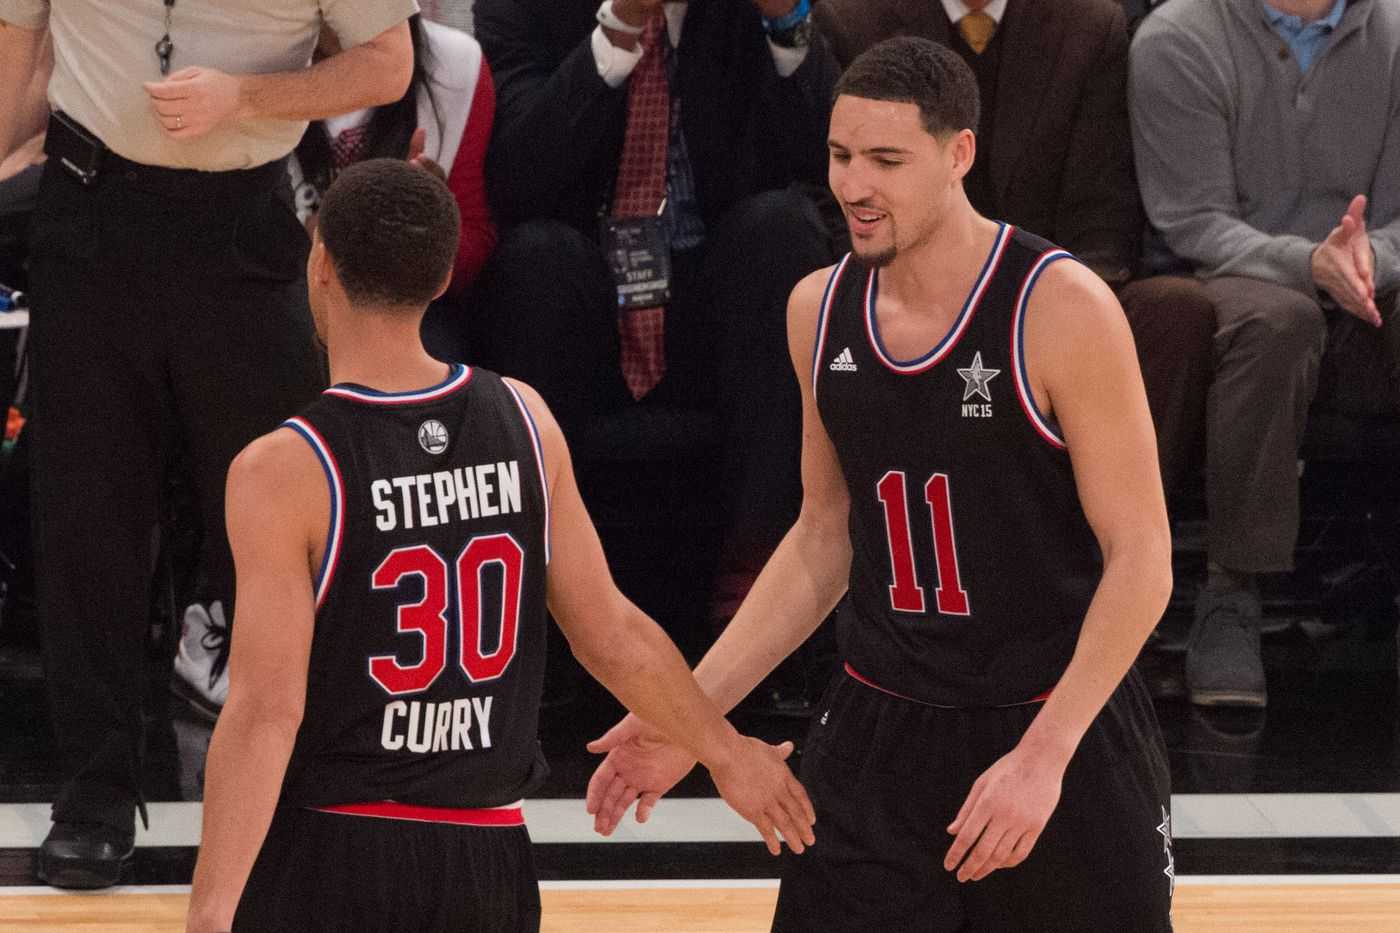 Stephen Curry Klay Thompson and the best backcourt duos of all